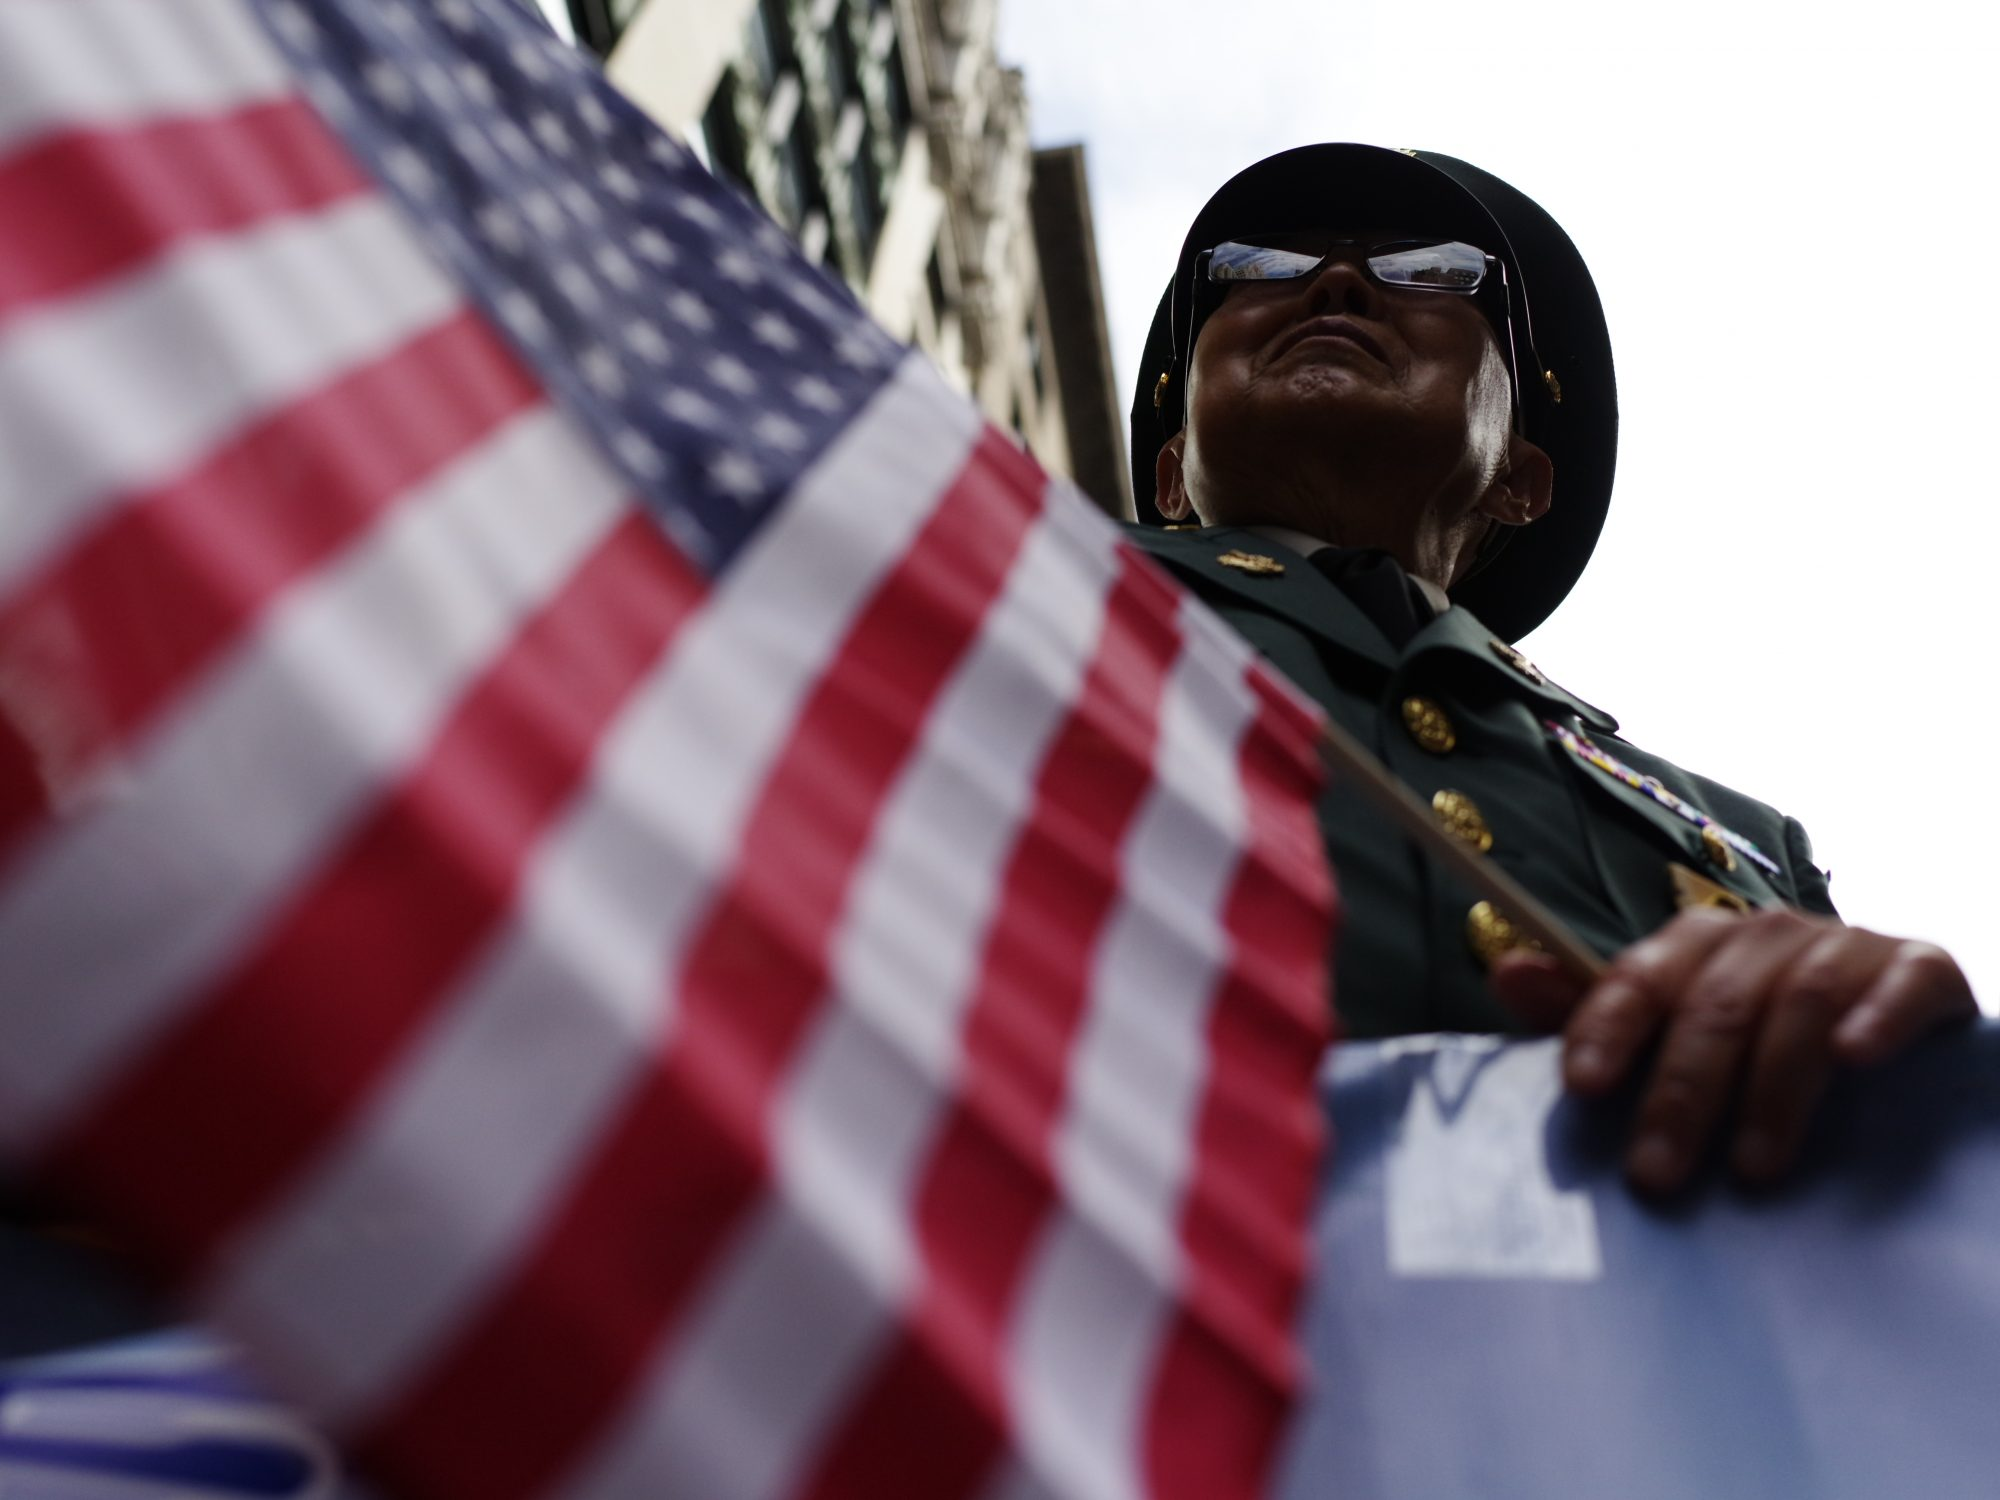 Korean veteran. American flag. NYC.